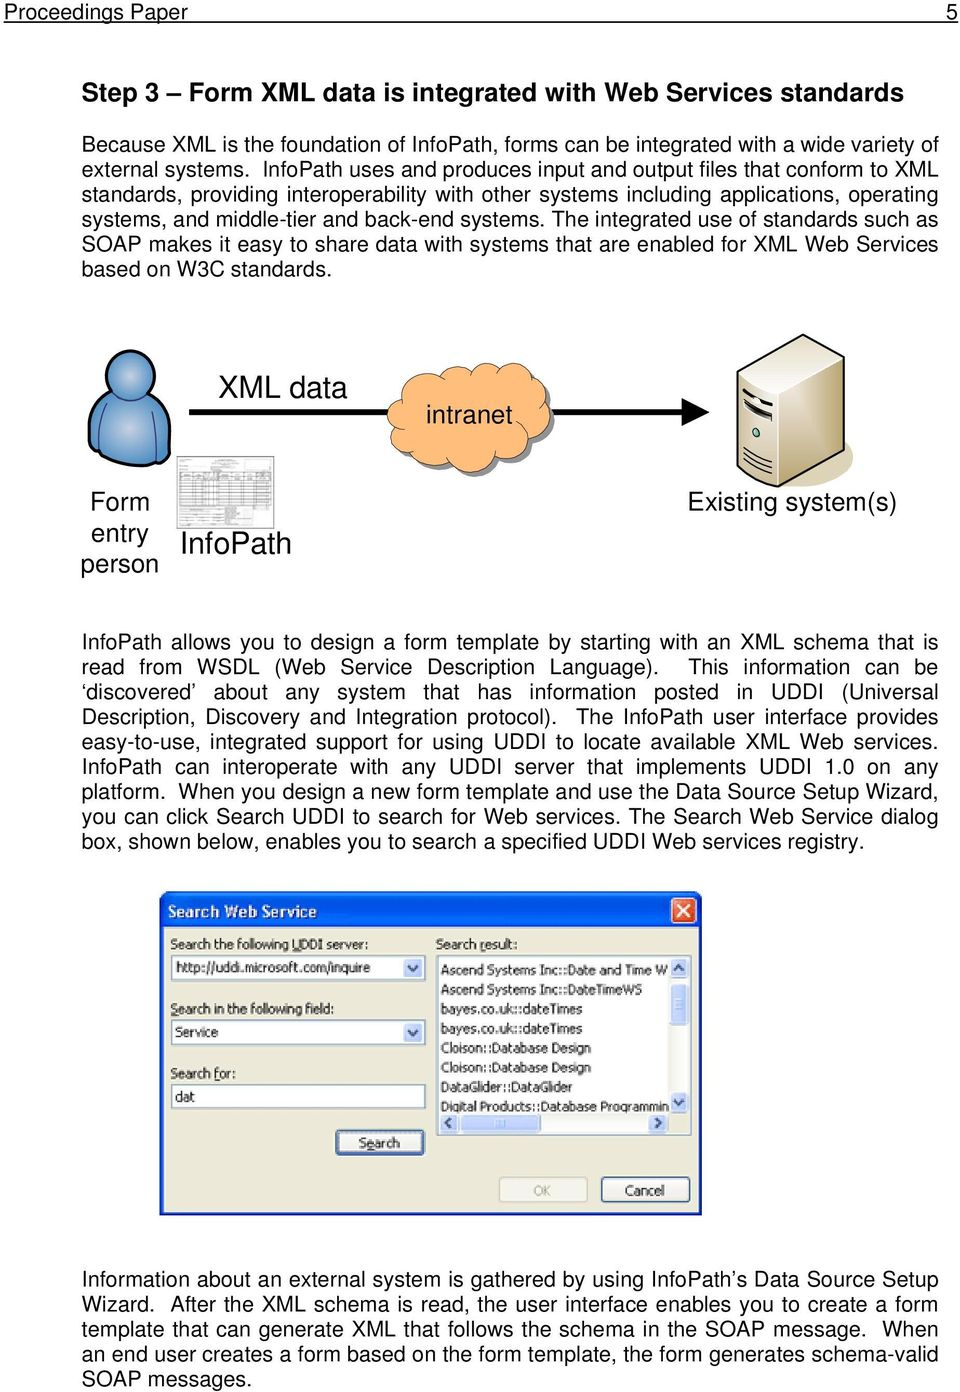 The integrated use of standards such as SOAP makes it easy to share data with systems that are enabled for XML Web Services based on W3C standards.